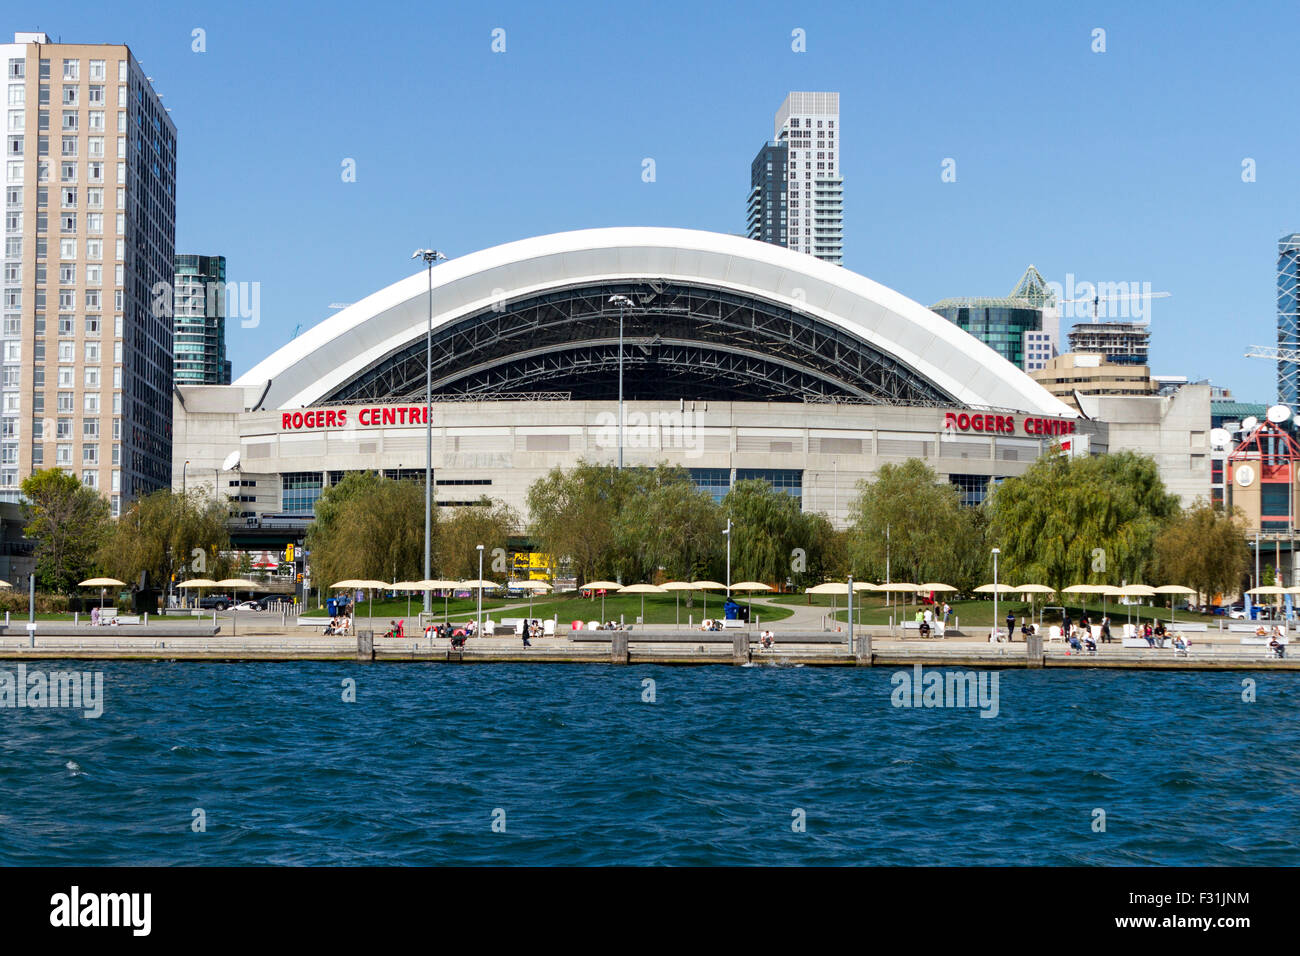 rogers-centre-sports-stadum-with-retractable-roof-along-toronto-city-F31JNM.jpg